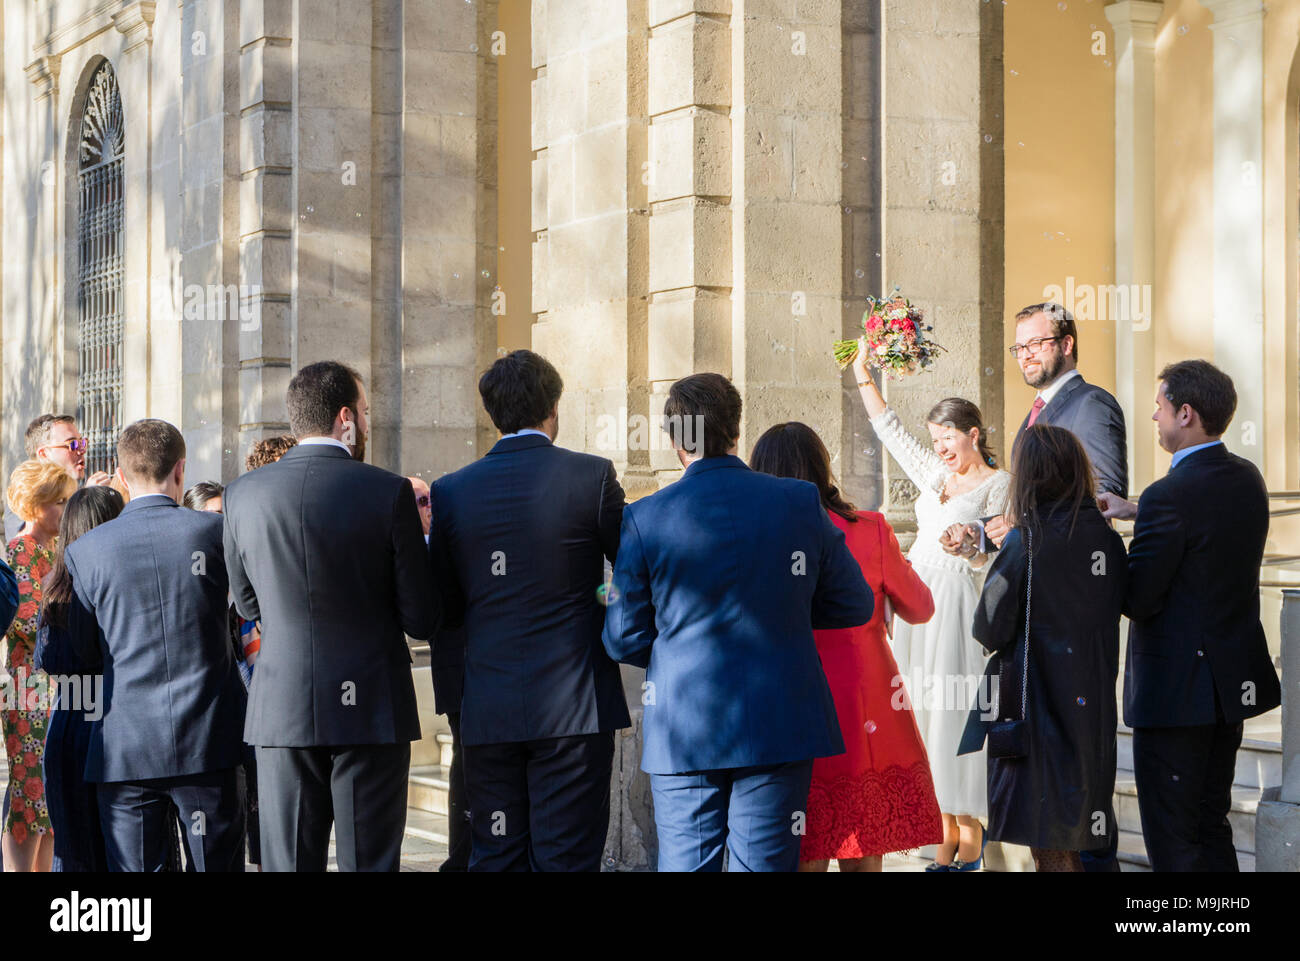 Newly married/ wed couple coming out of the registry office at the Town Hall in Seville 2018, Andalusia, Spain - Stock Image